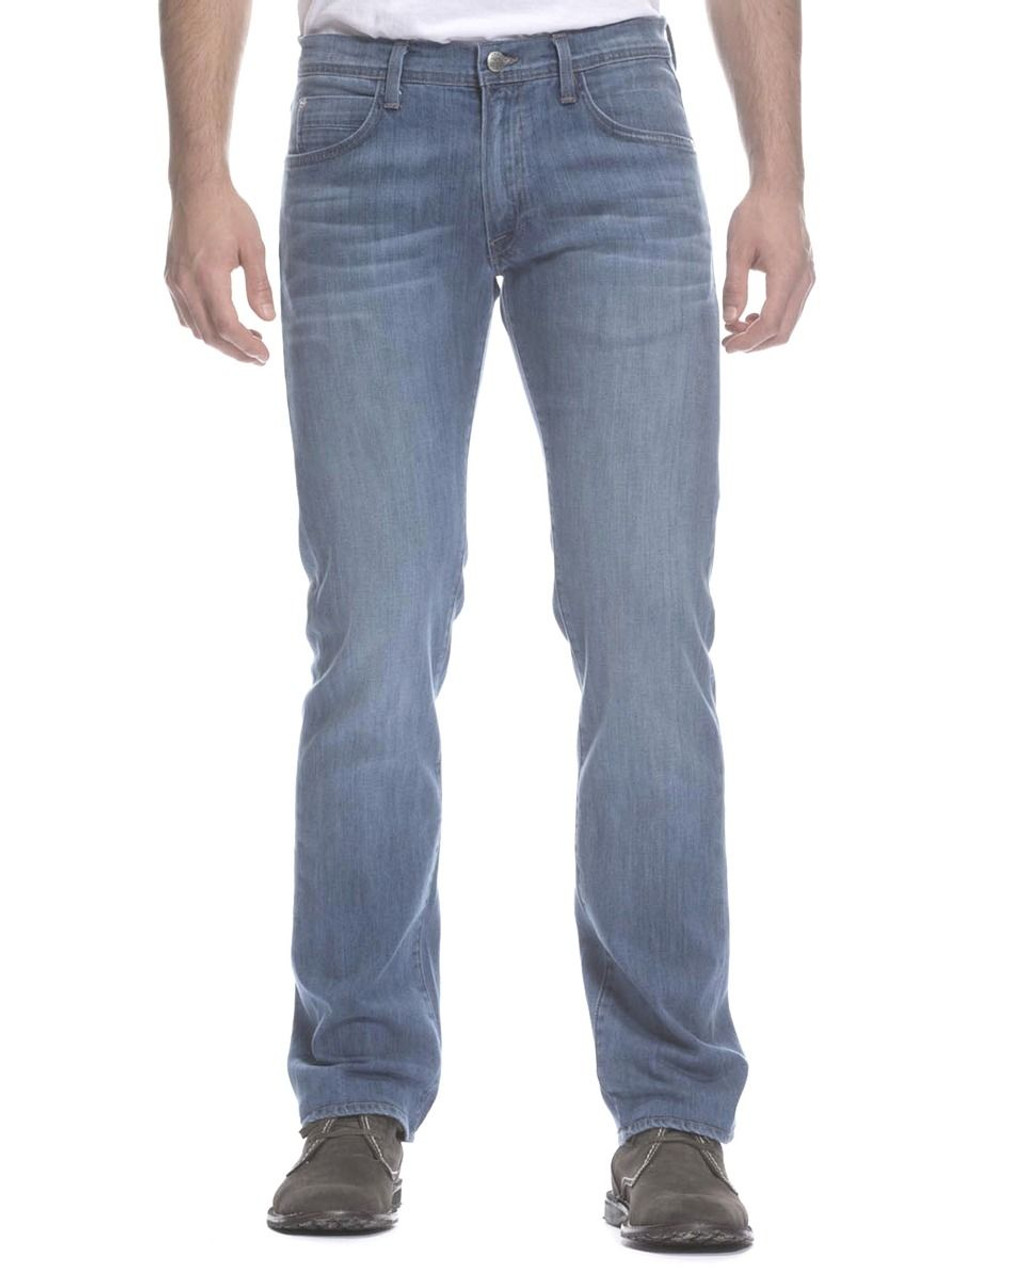 Agave Mens Classic Fit Jean in Big Drakes 4 Year Flex